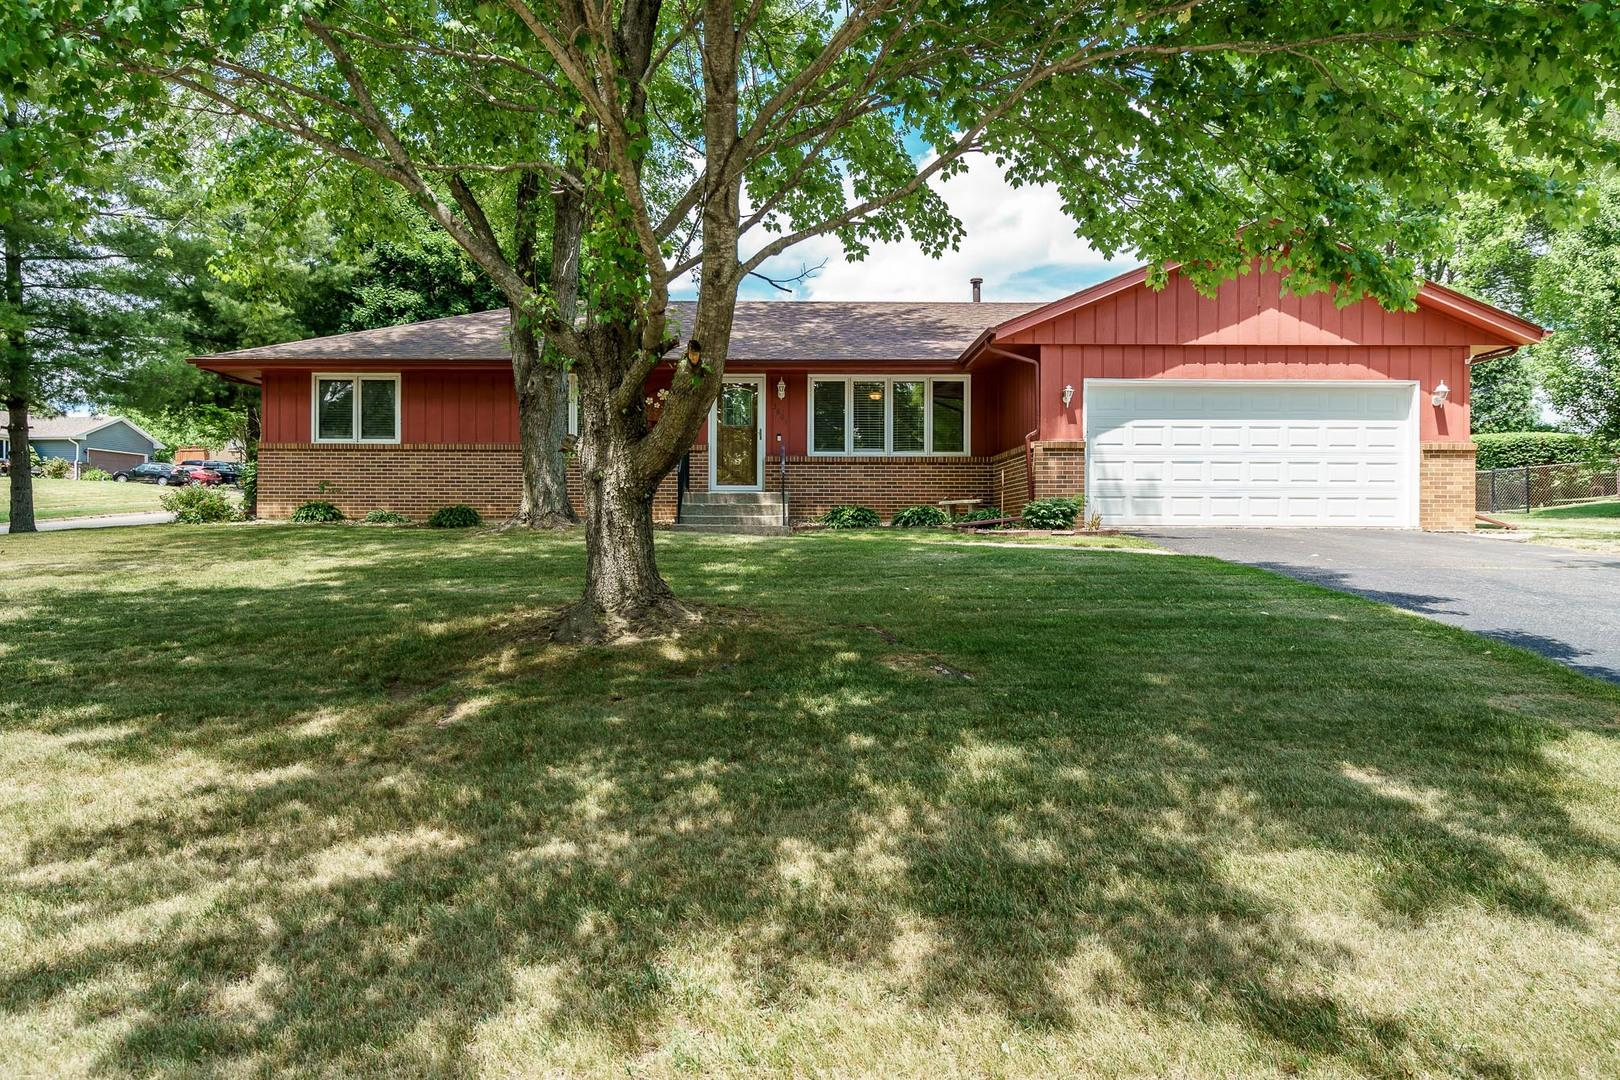 3604 Lookout Drive, Rockford, IL 61109 - #: 11115975